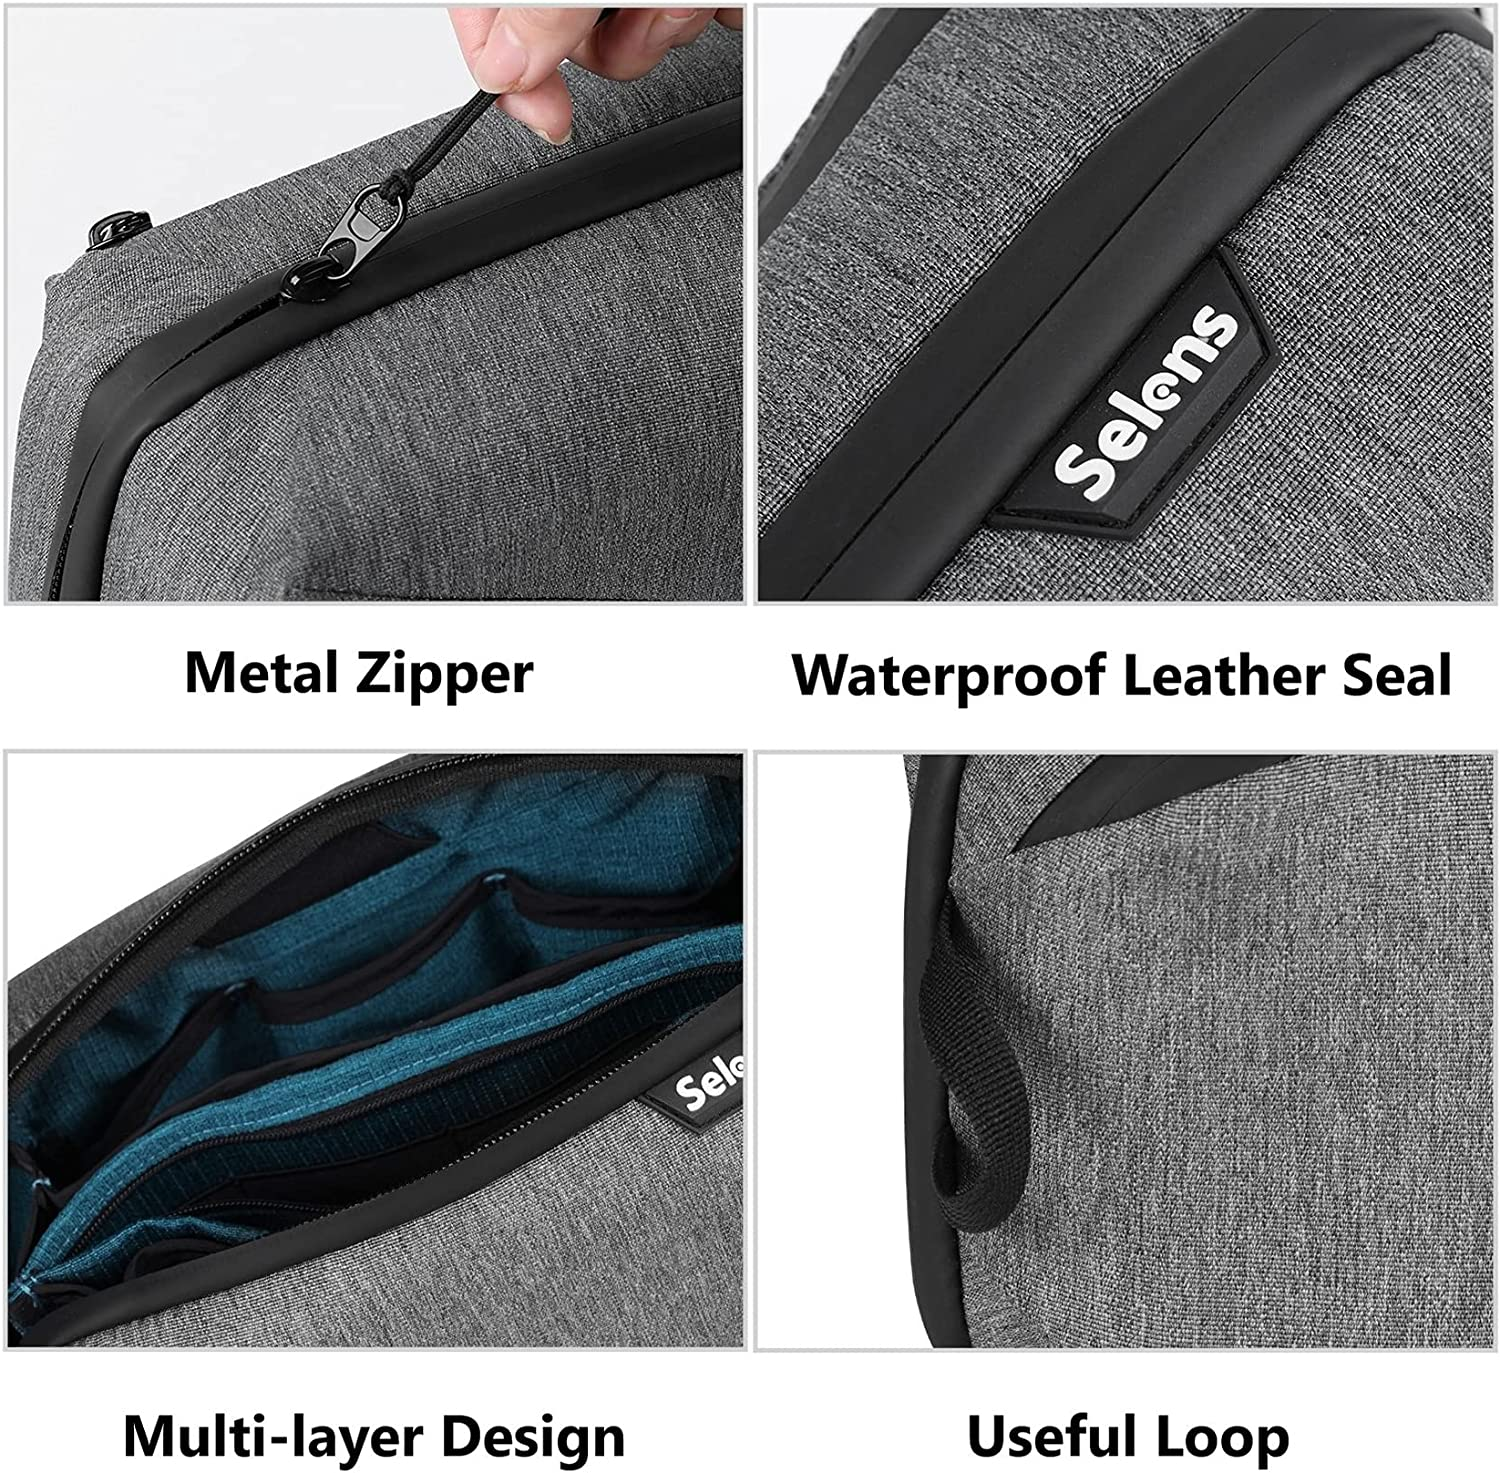 Selens Electronics Organizer Pouch Travel Case Waterproof Electronics Storage Bag Gadgets Accessories Bag Cable Organizer for Card Cable Cord Charger USB Flash Hard Drives or Small Photography Gadgets